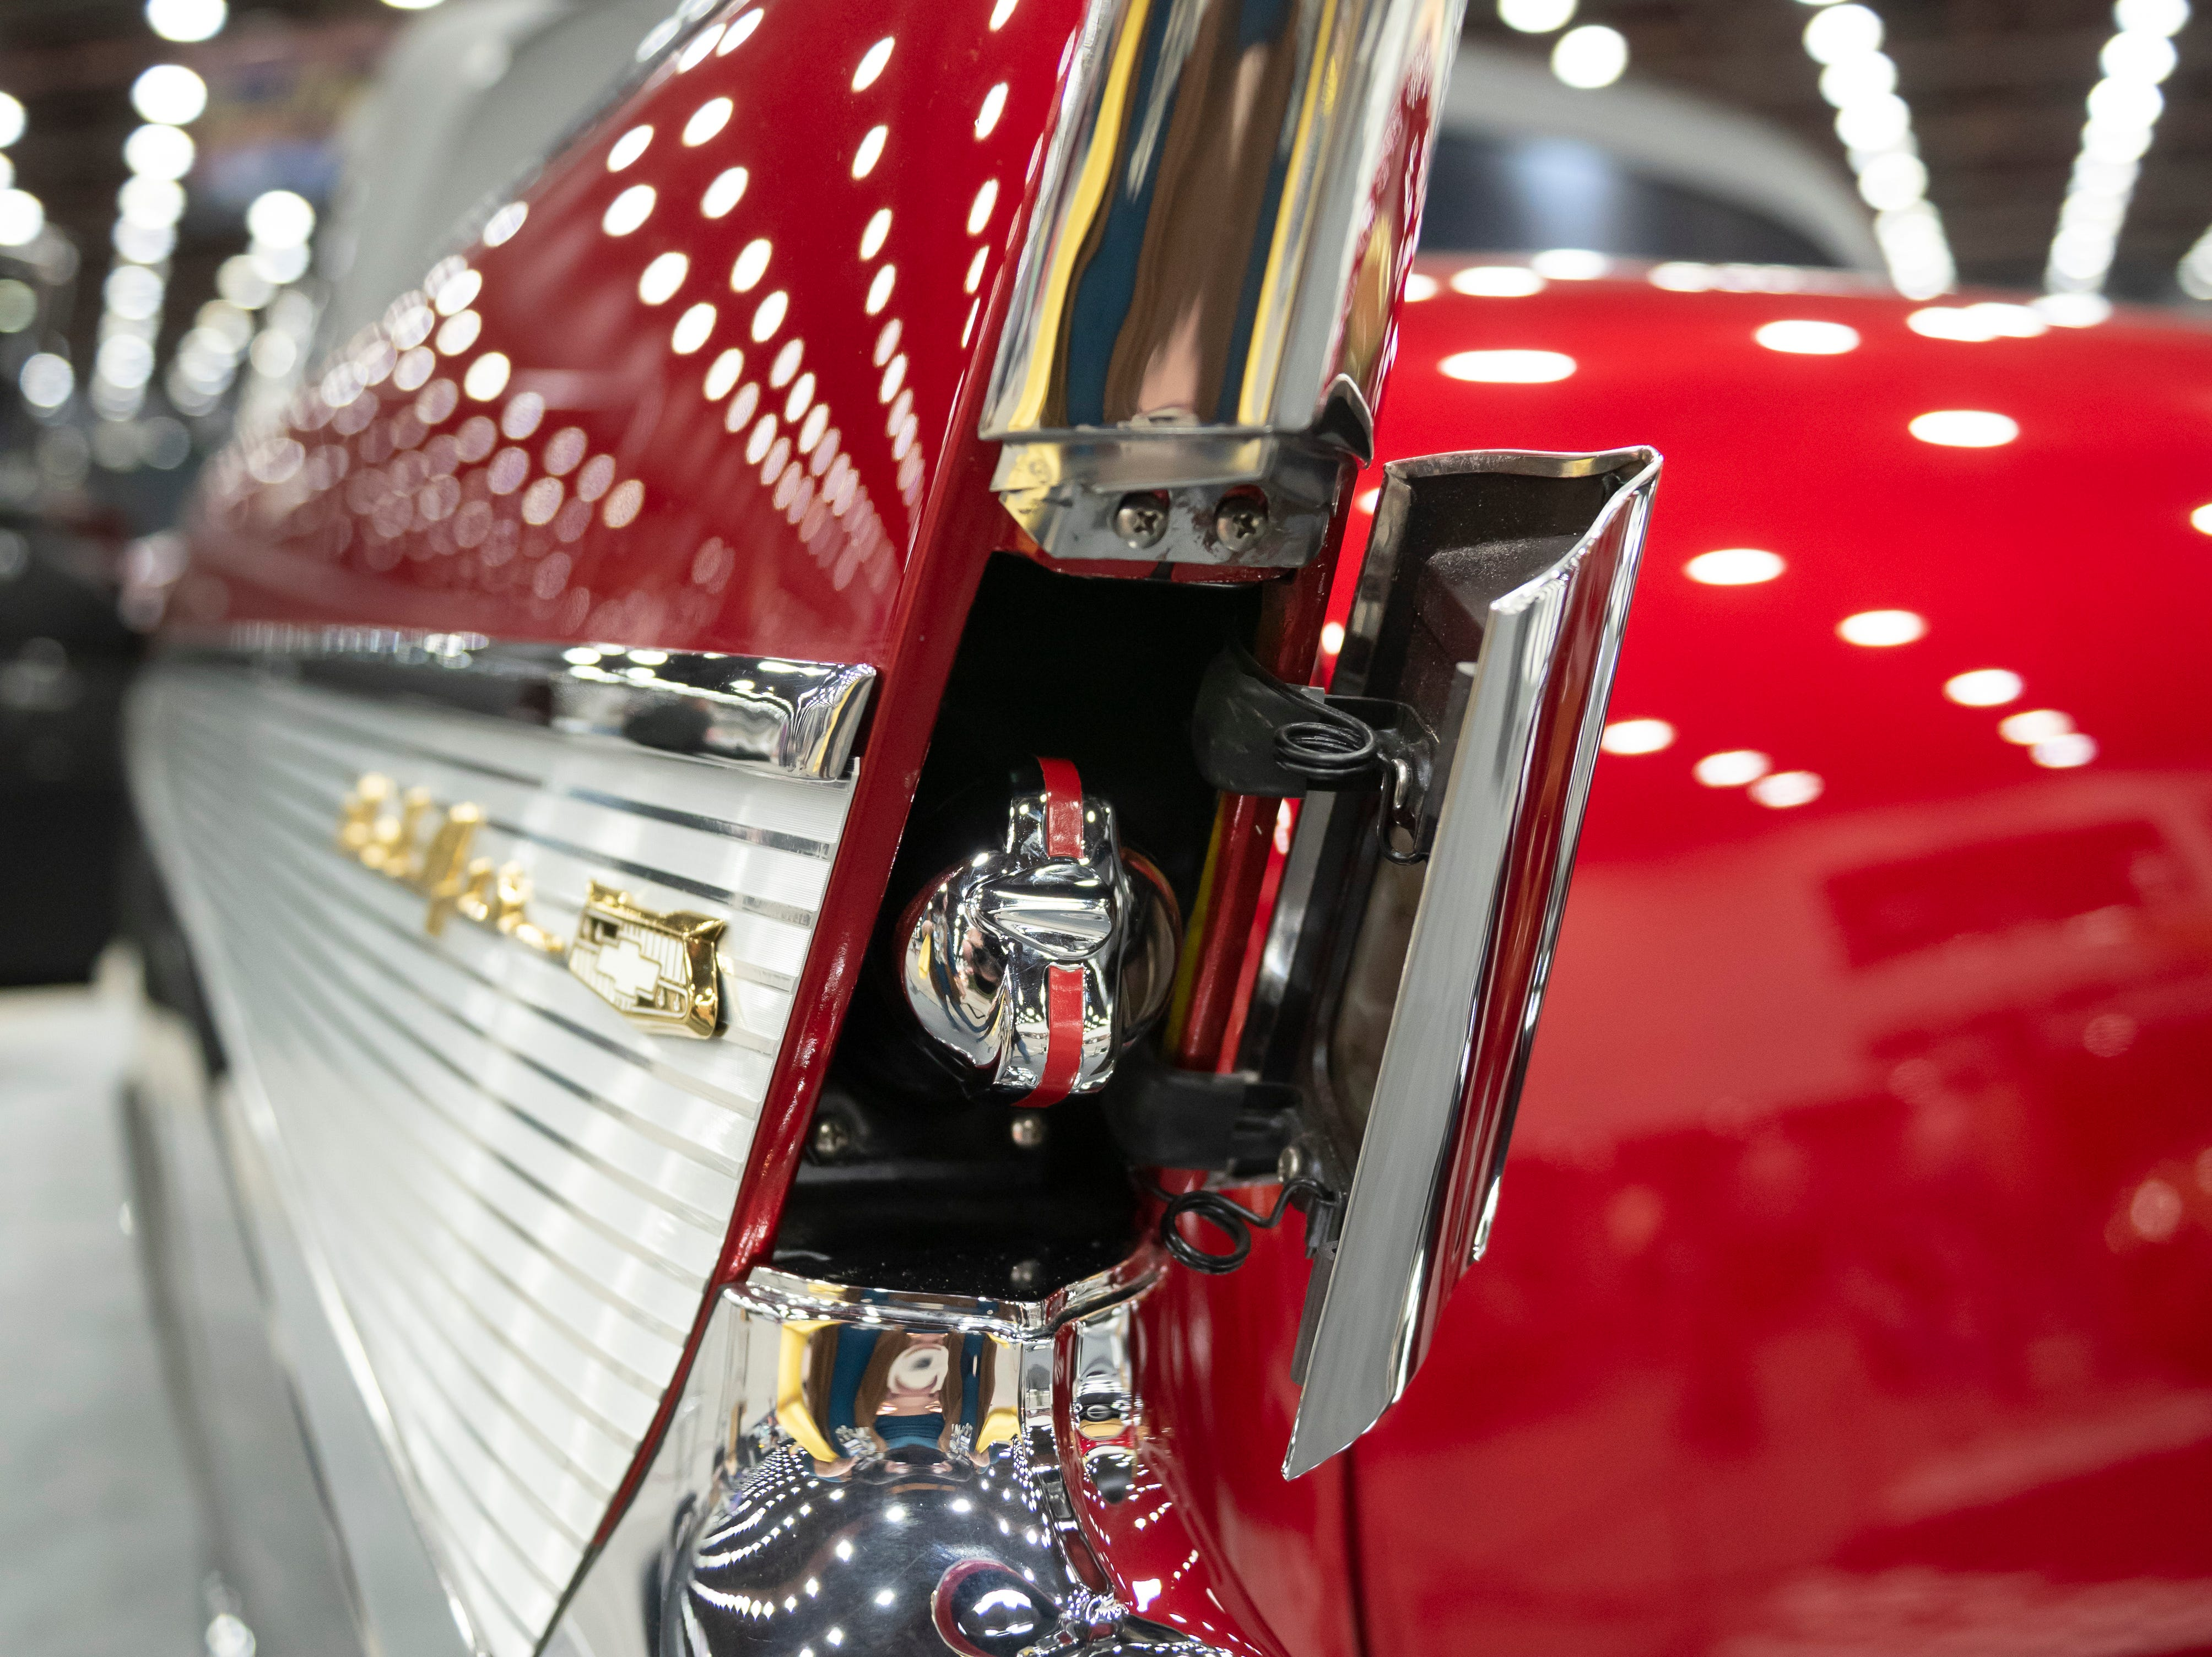 The rear fin and gas cap of a 1957 Chevy Bel Air convertible owned by Philip and Patty Wiegand, of Richmond.